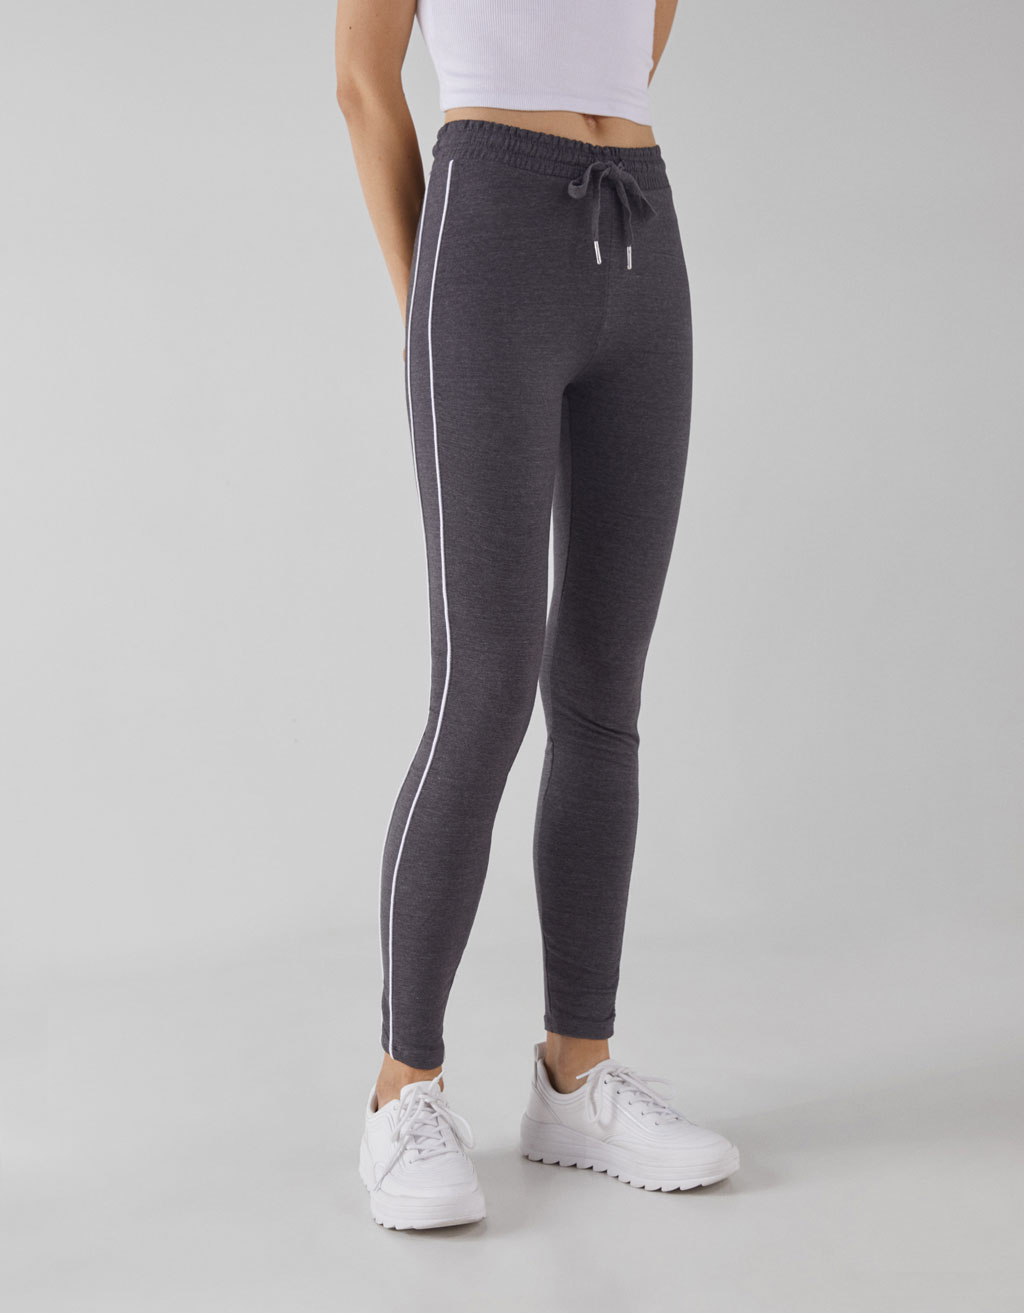 Velours legging